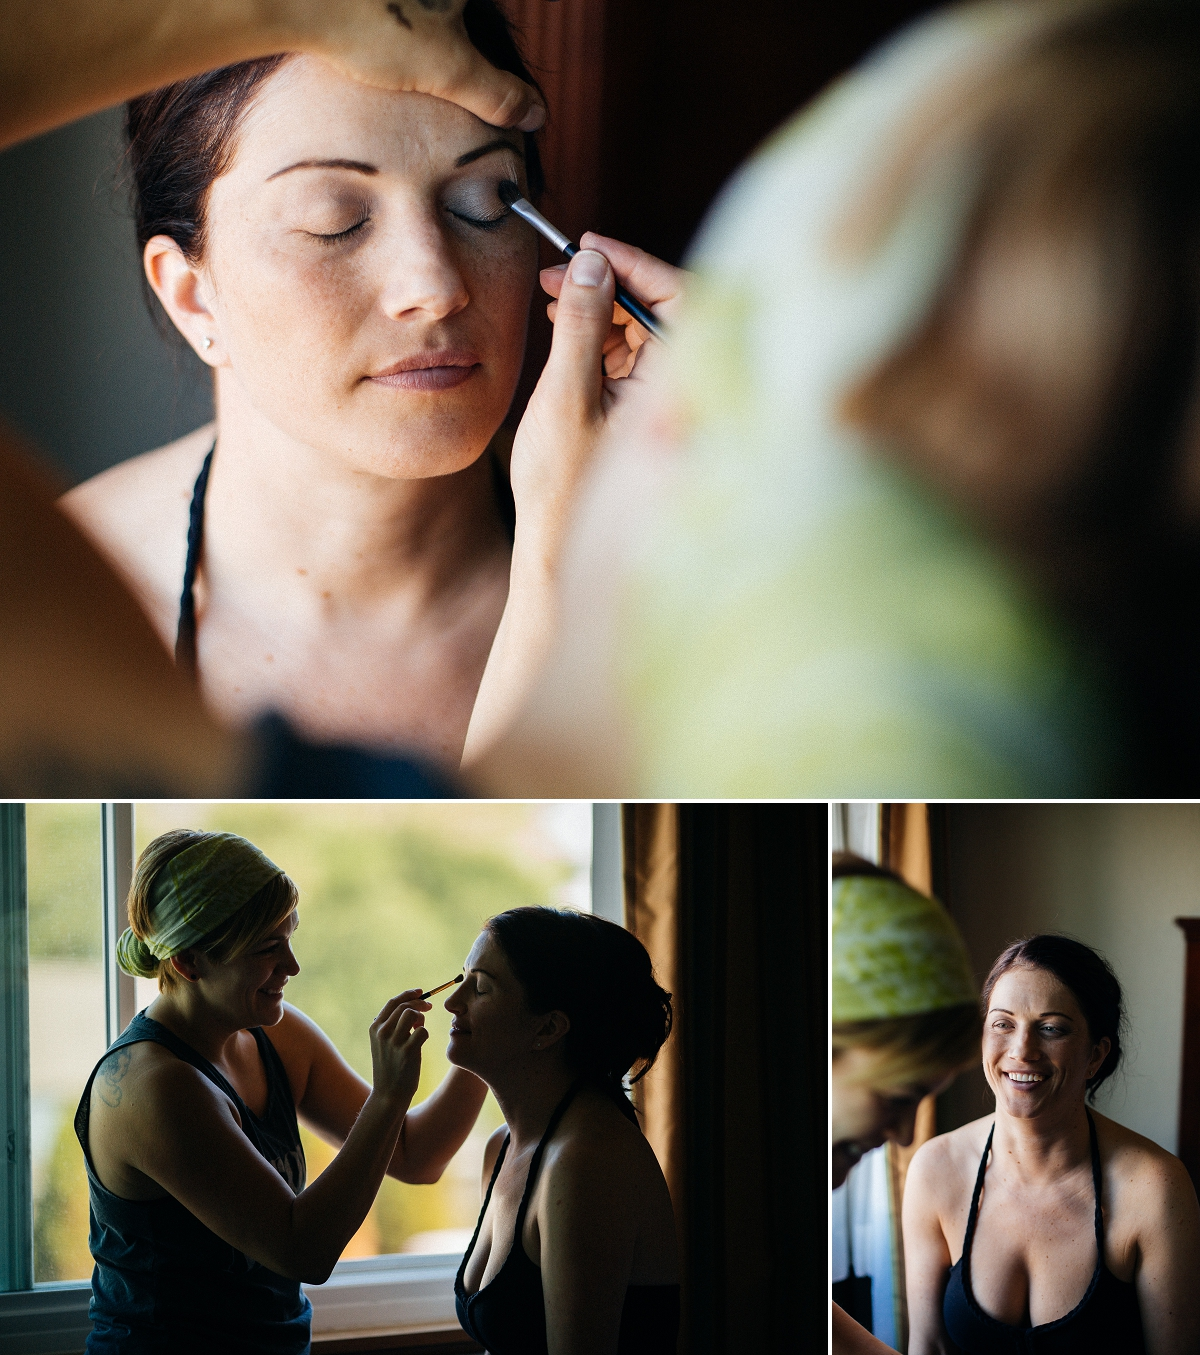 Beth and Gina Shakopee Wedding Photography 3